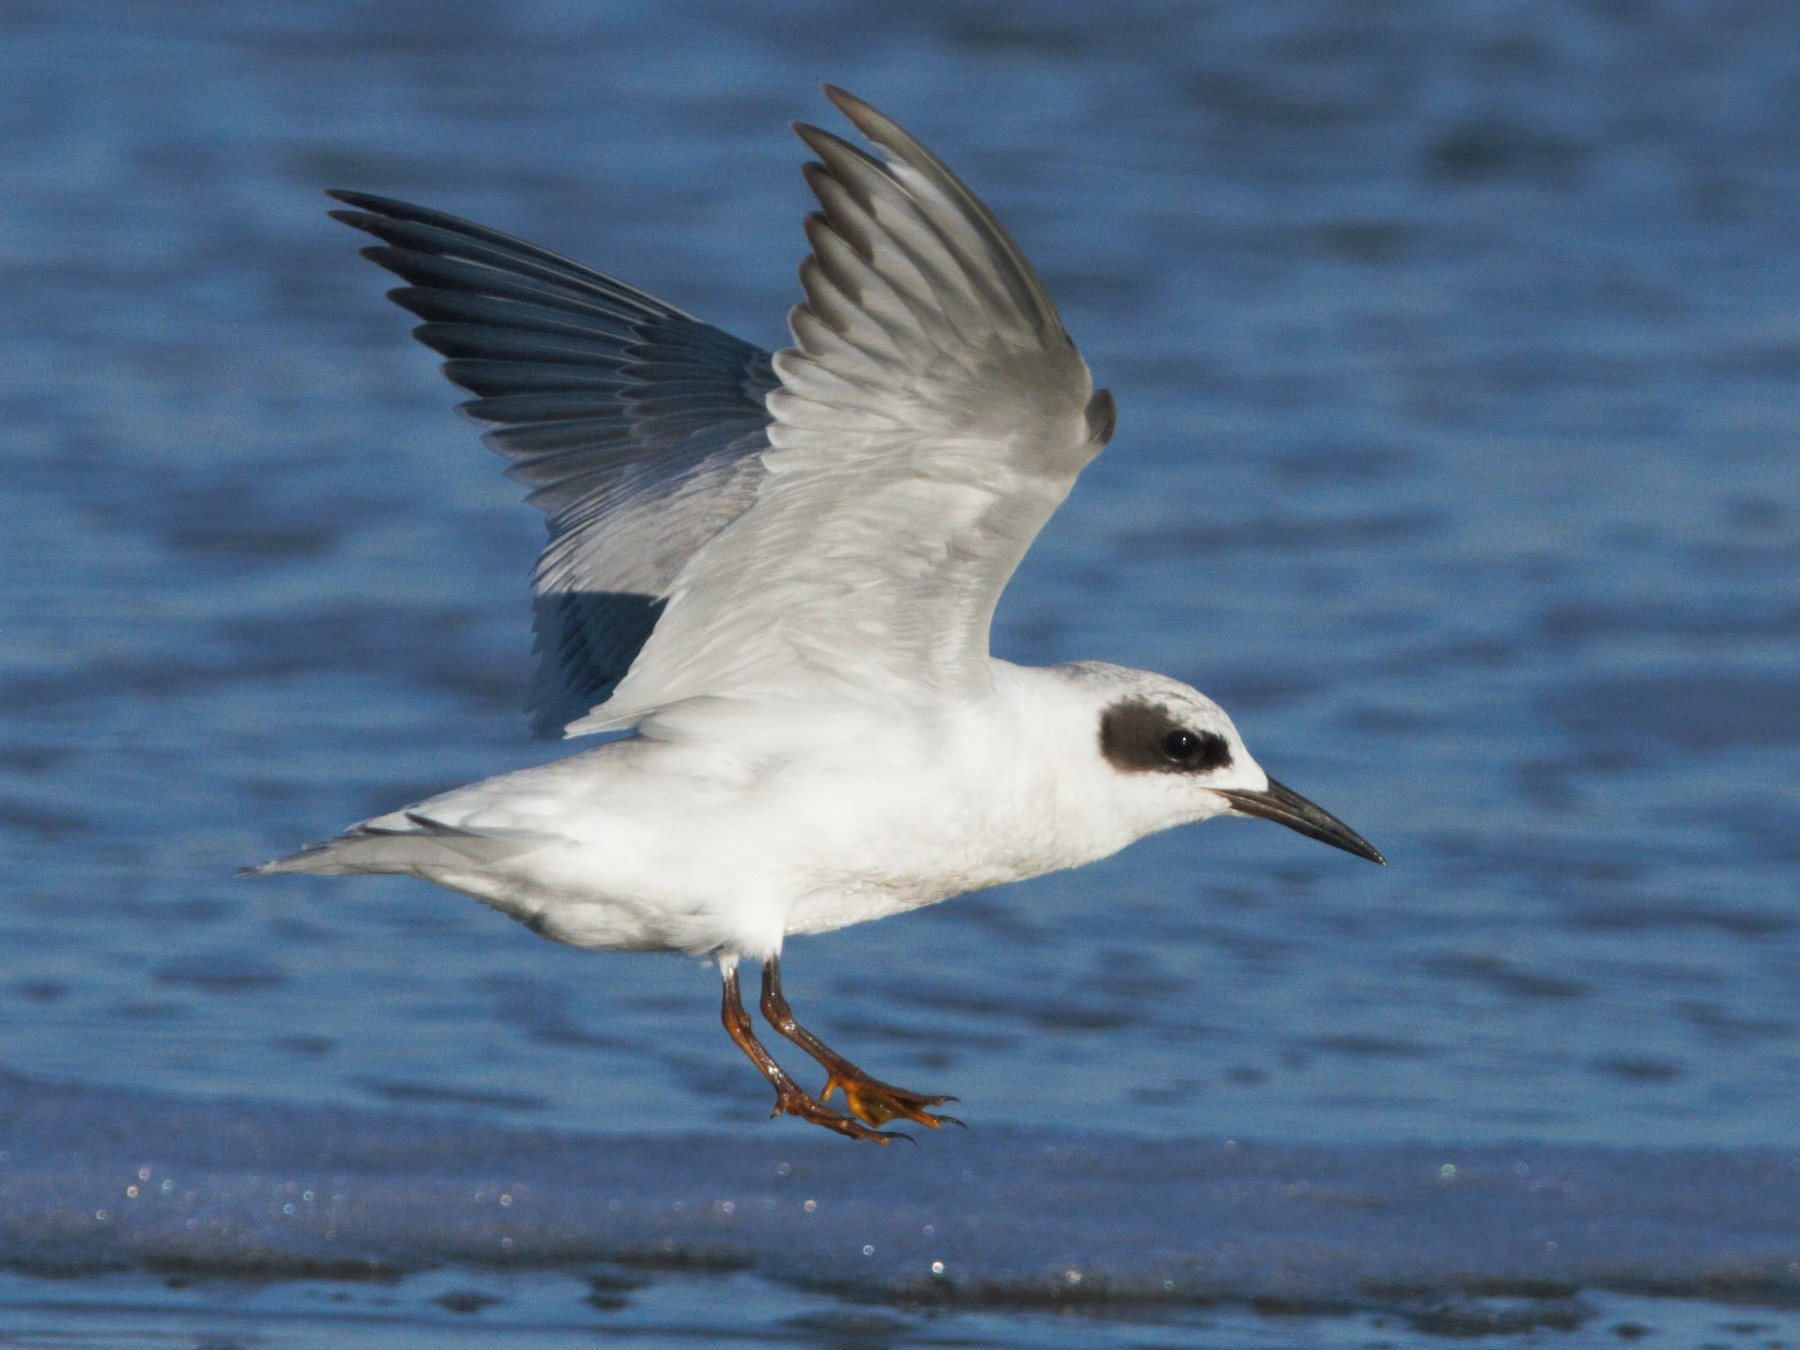 Snowy-crowned Tern - Christian Andretti